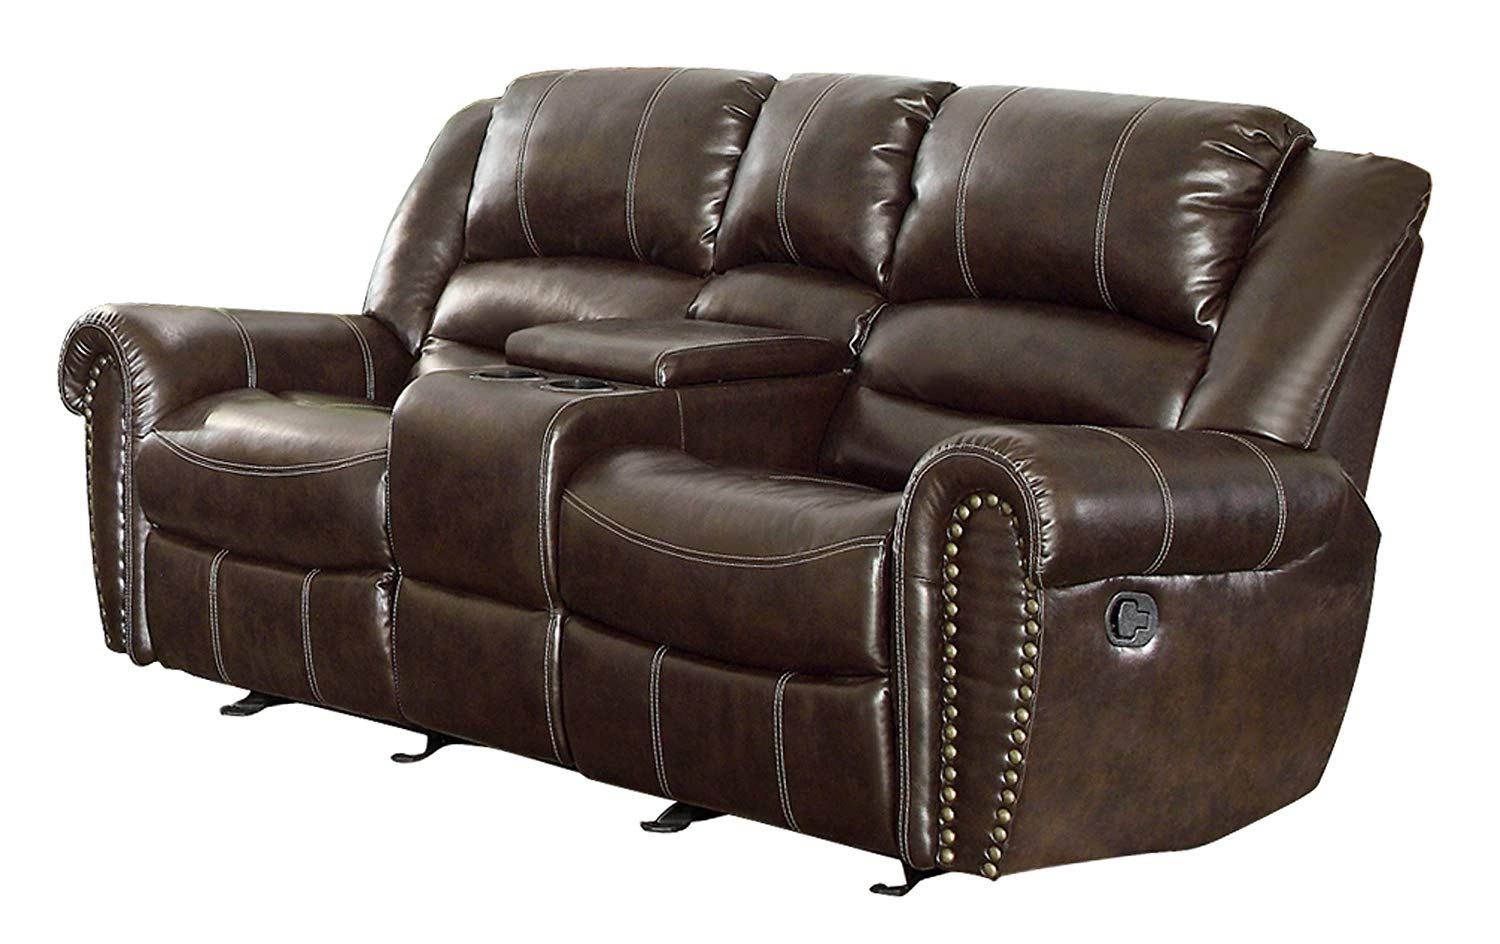 Traveller Location: Homelegance 9668BRW-2 Double Glider Reclining Loveseat with  Center Console Bonded Leather, Brown: Kitchen & Dining